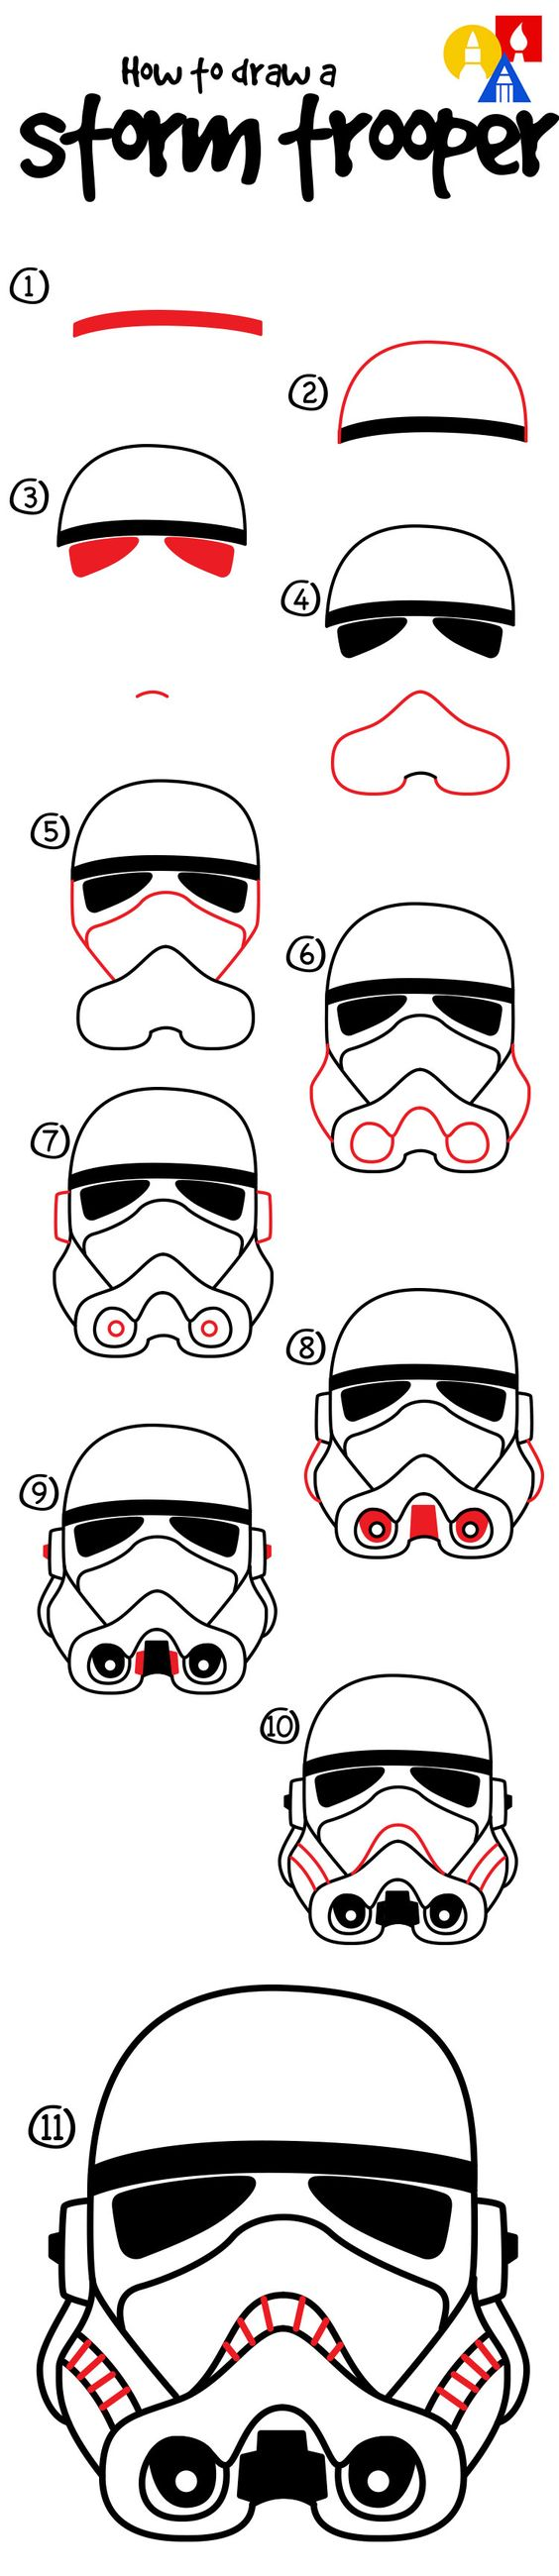 How To Draw A Stormtrooper Helmet - Art For Kids Hub ...